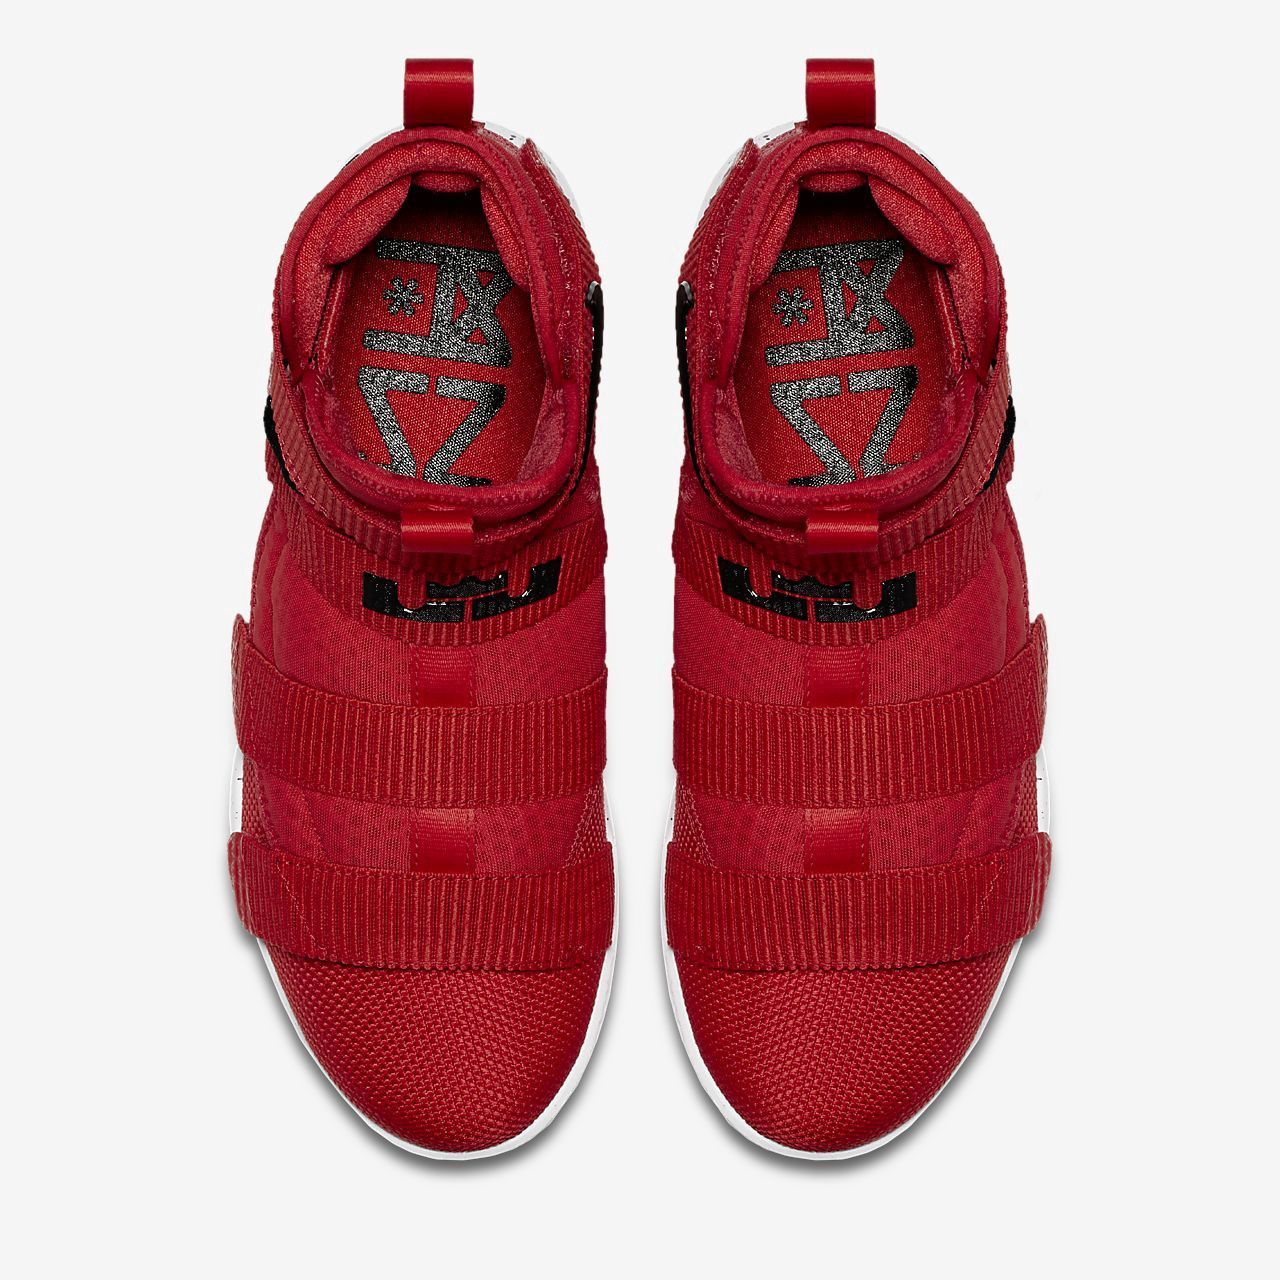 9d59a03c984 Nike Lebron Soldier Xi Flyease (Extra Wide) Basketball Shoe - M 10.5   W 12   extrawideshoes